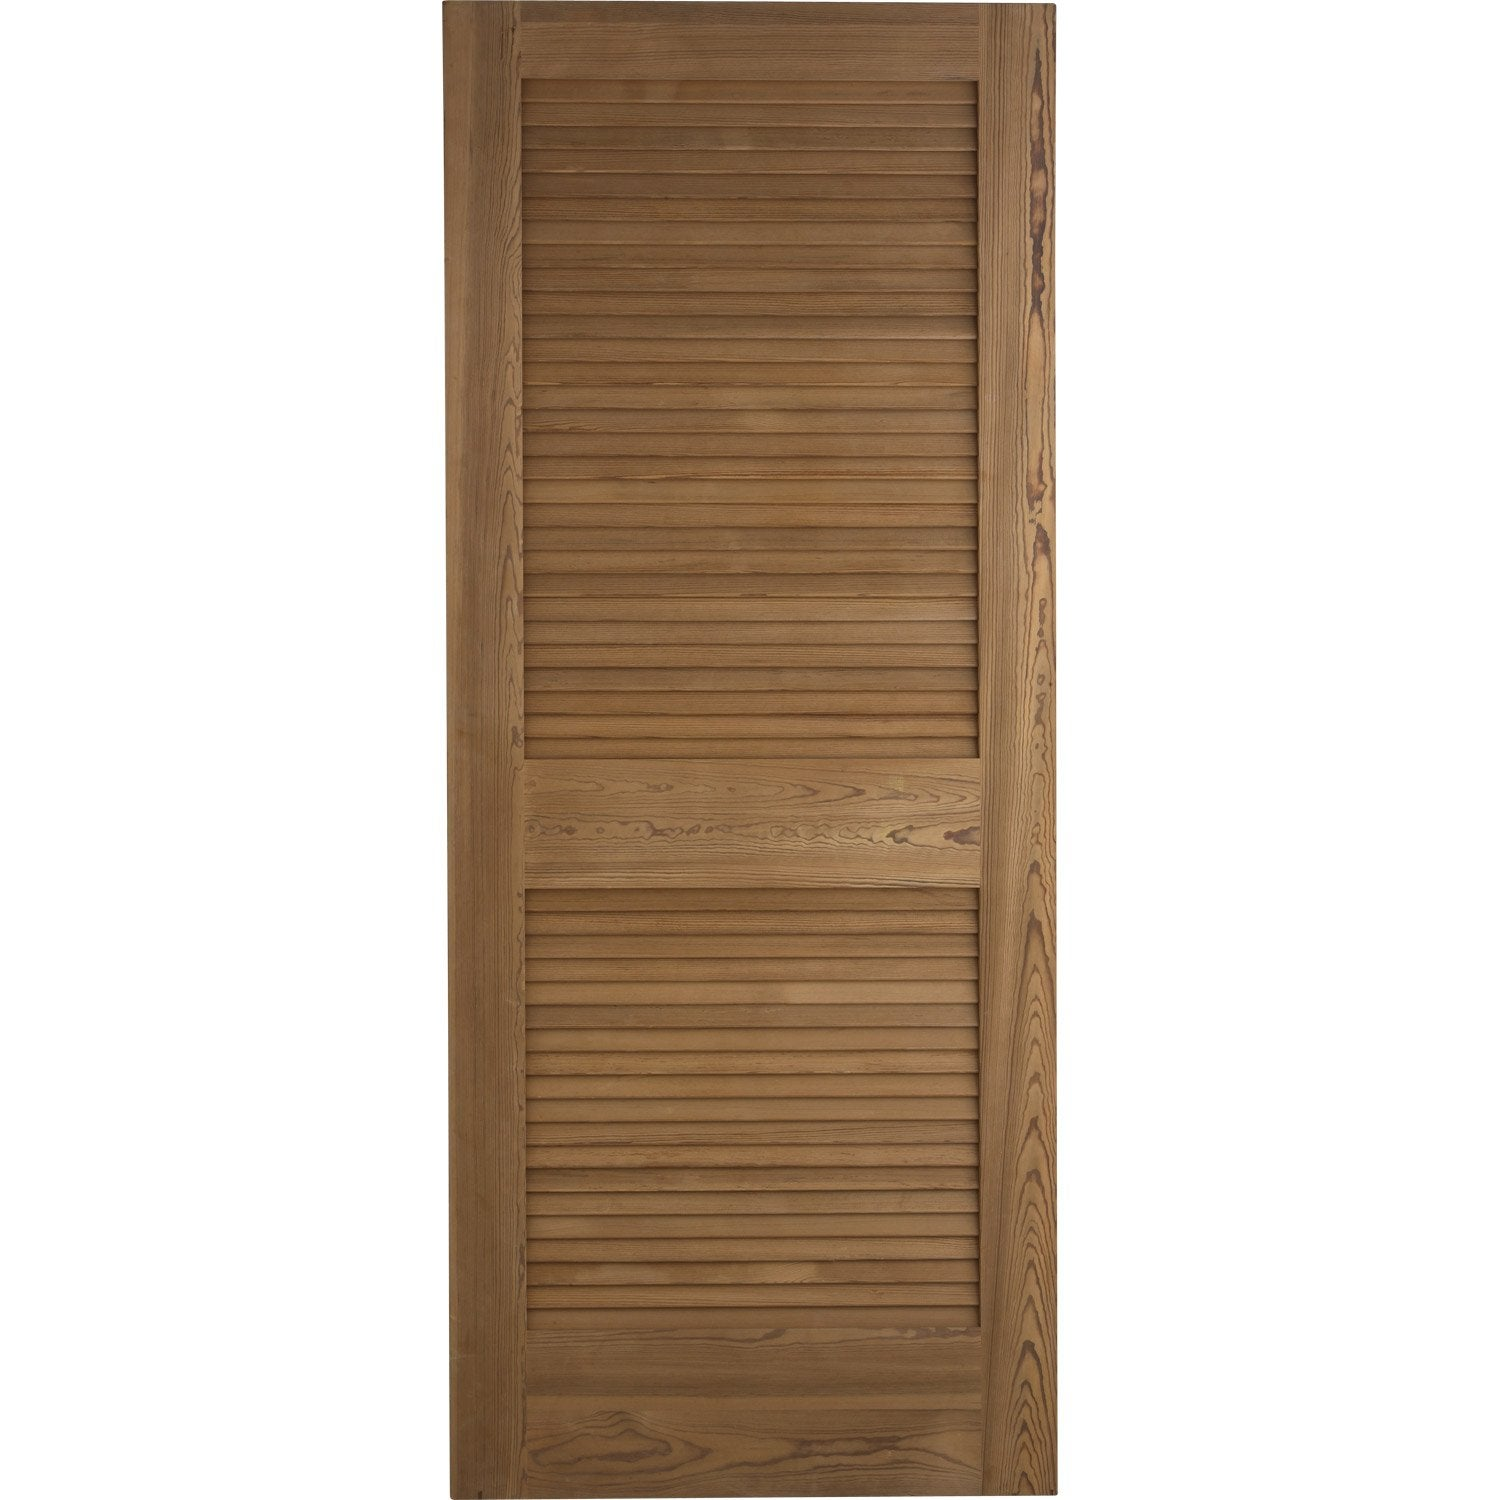 porte coulissante pin plaqu marron java artens 204 x 73